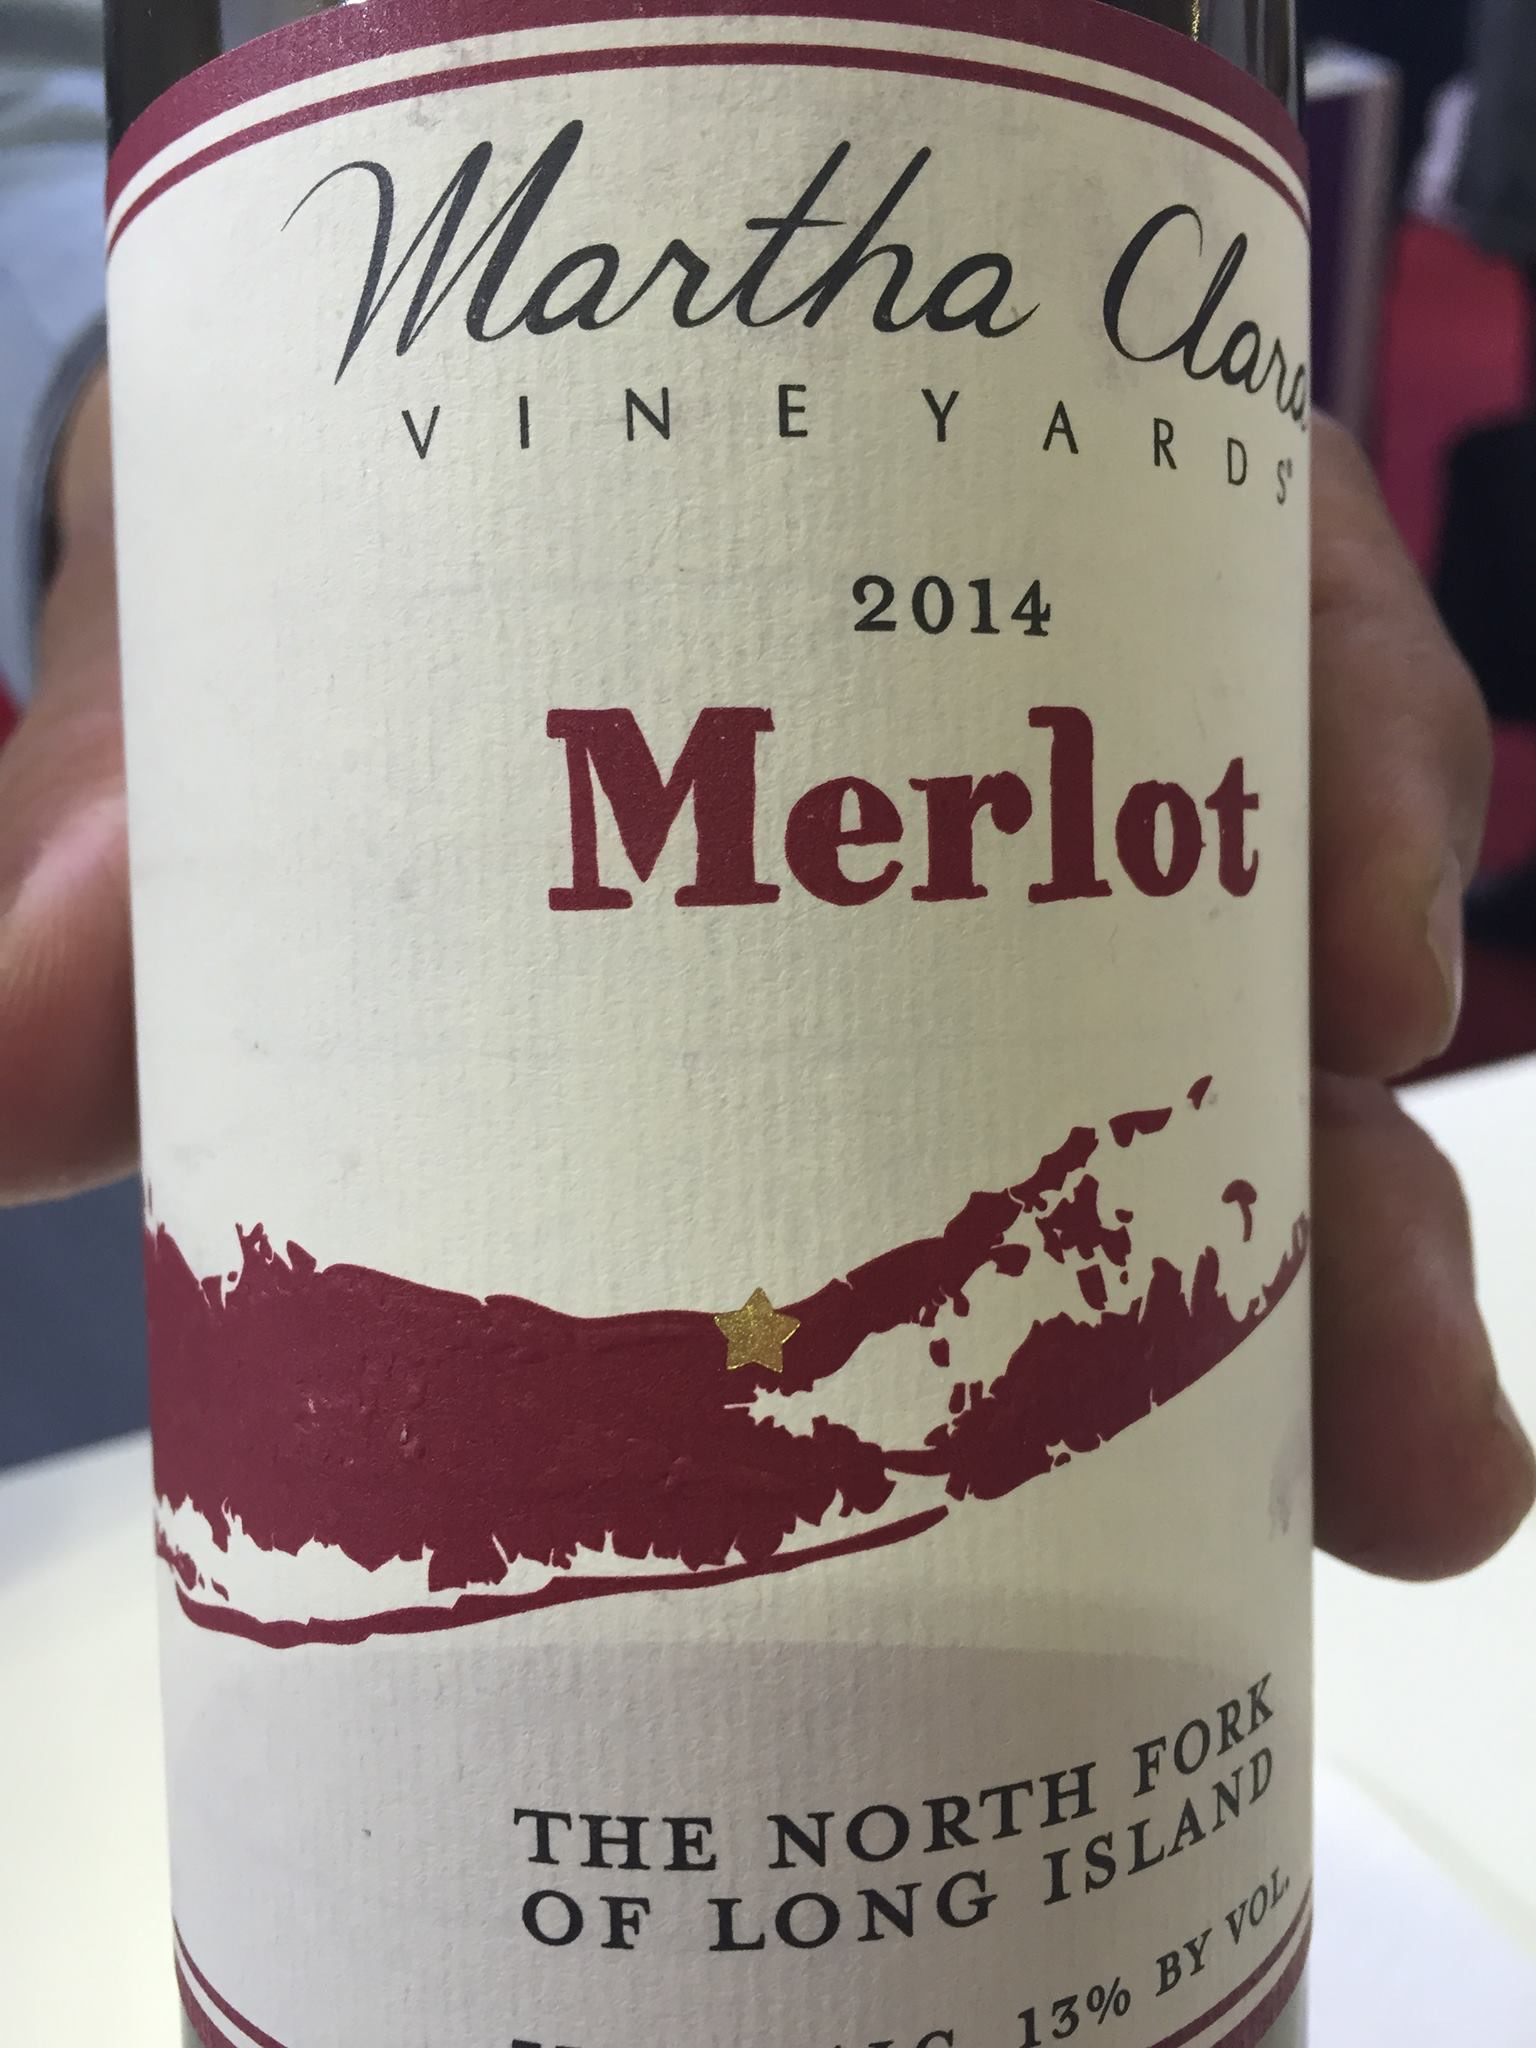 Martha Clara Vineyards – Merlot 2014 – The North Fork of Long Island